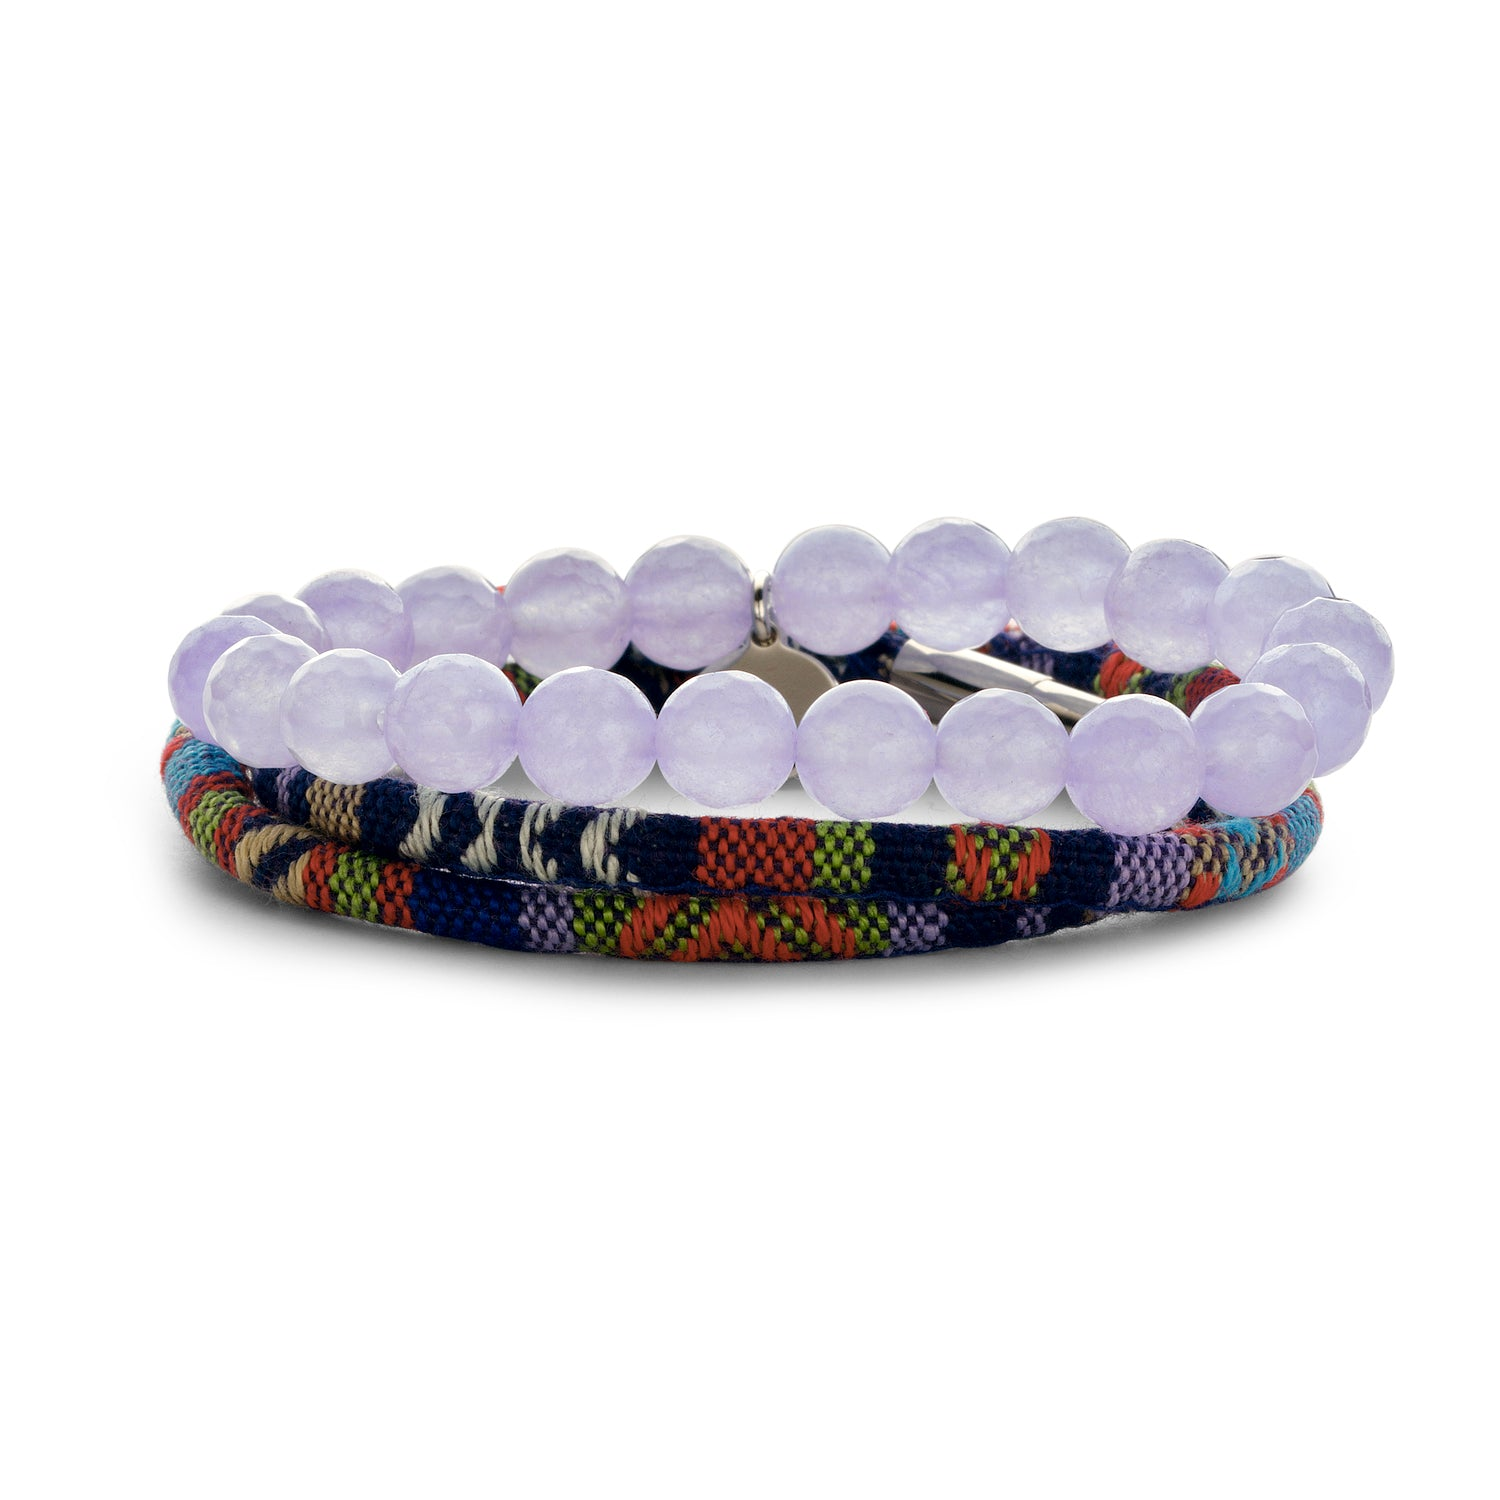 Set Peru Friendship bracelet lilac